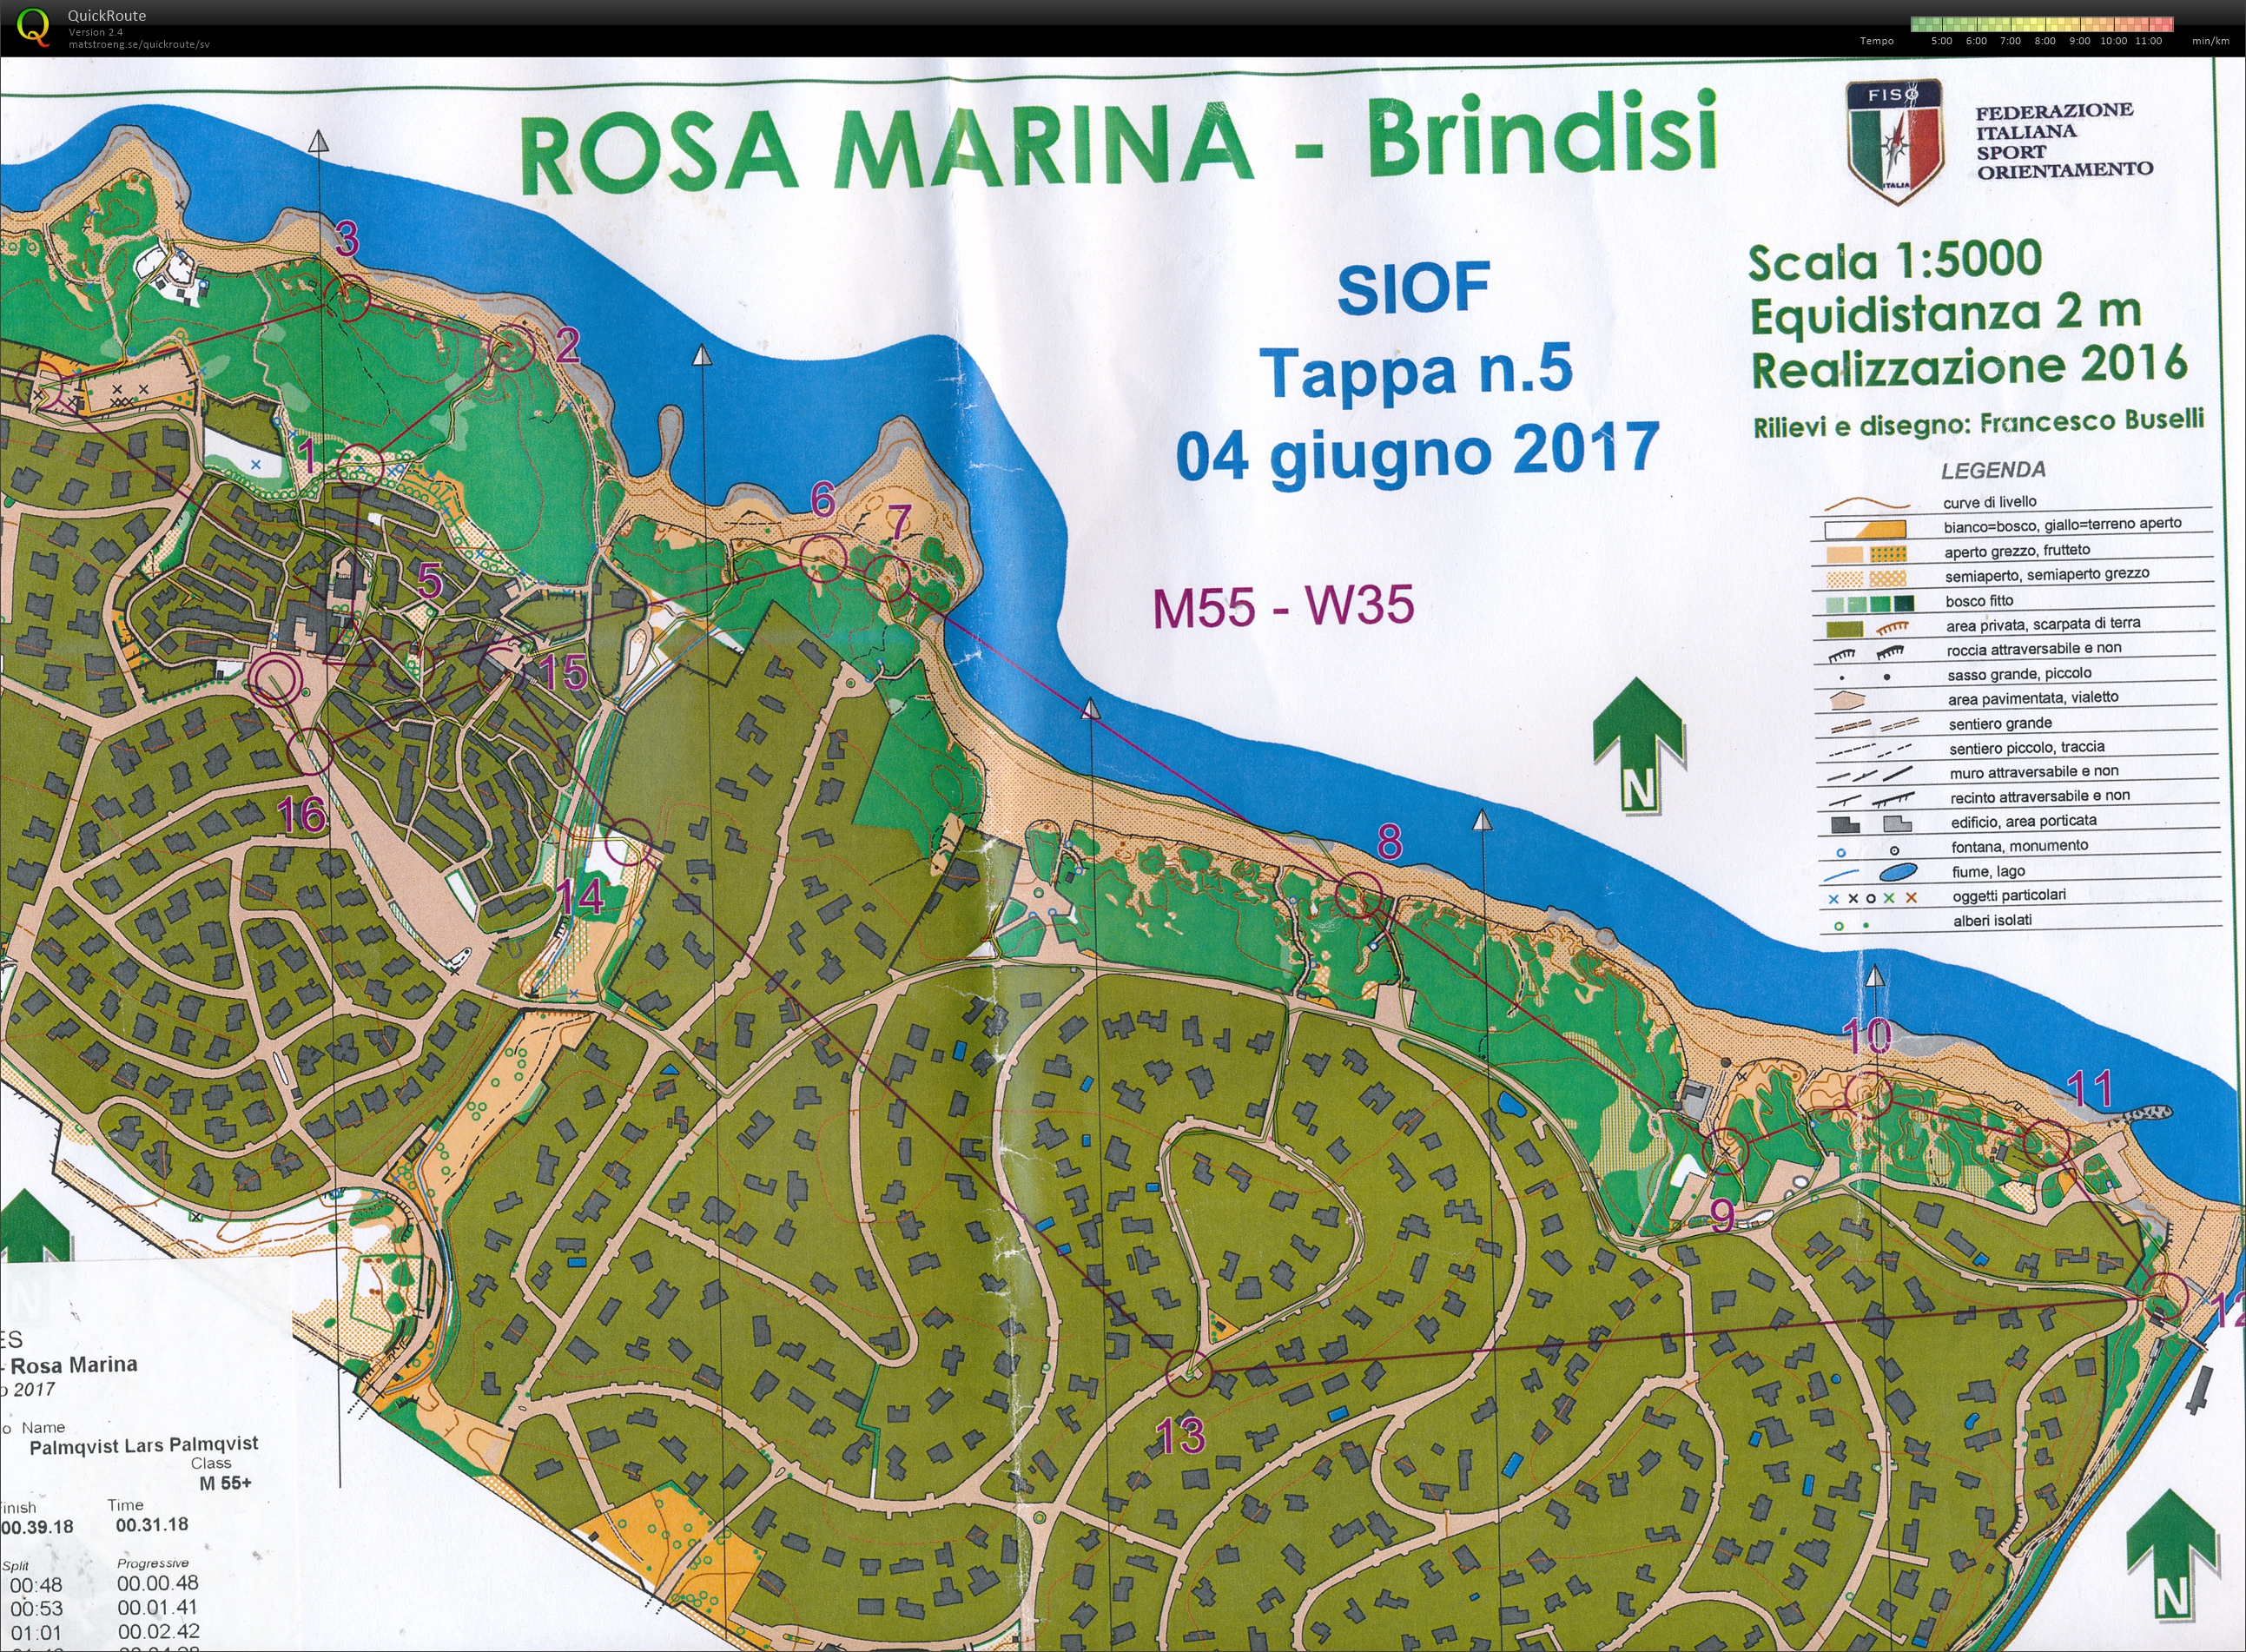 Southern Italy orienteering festival dag 6 (04/06/2017)